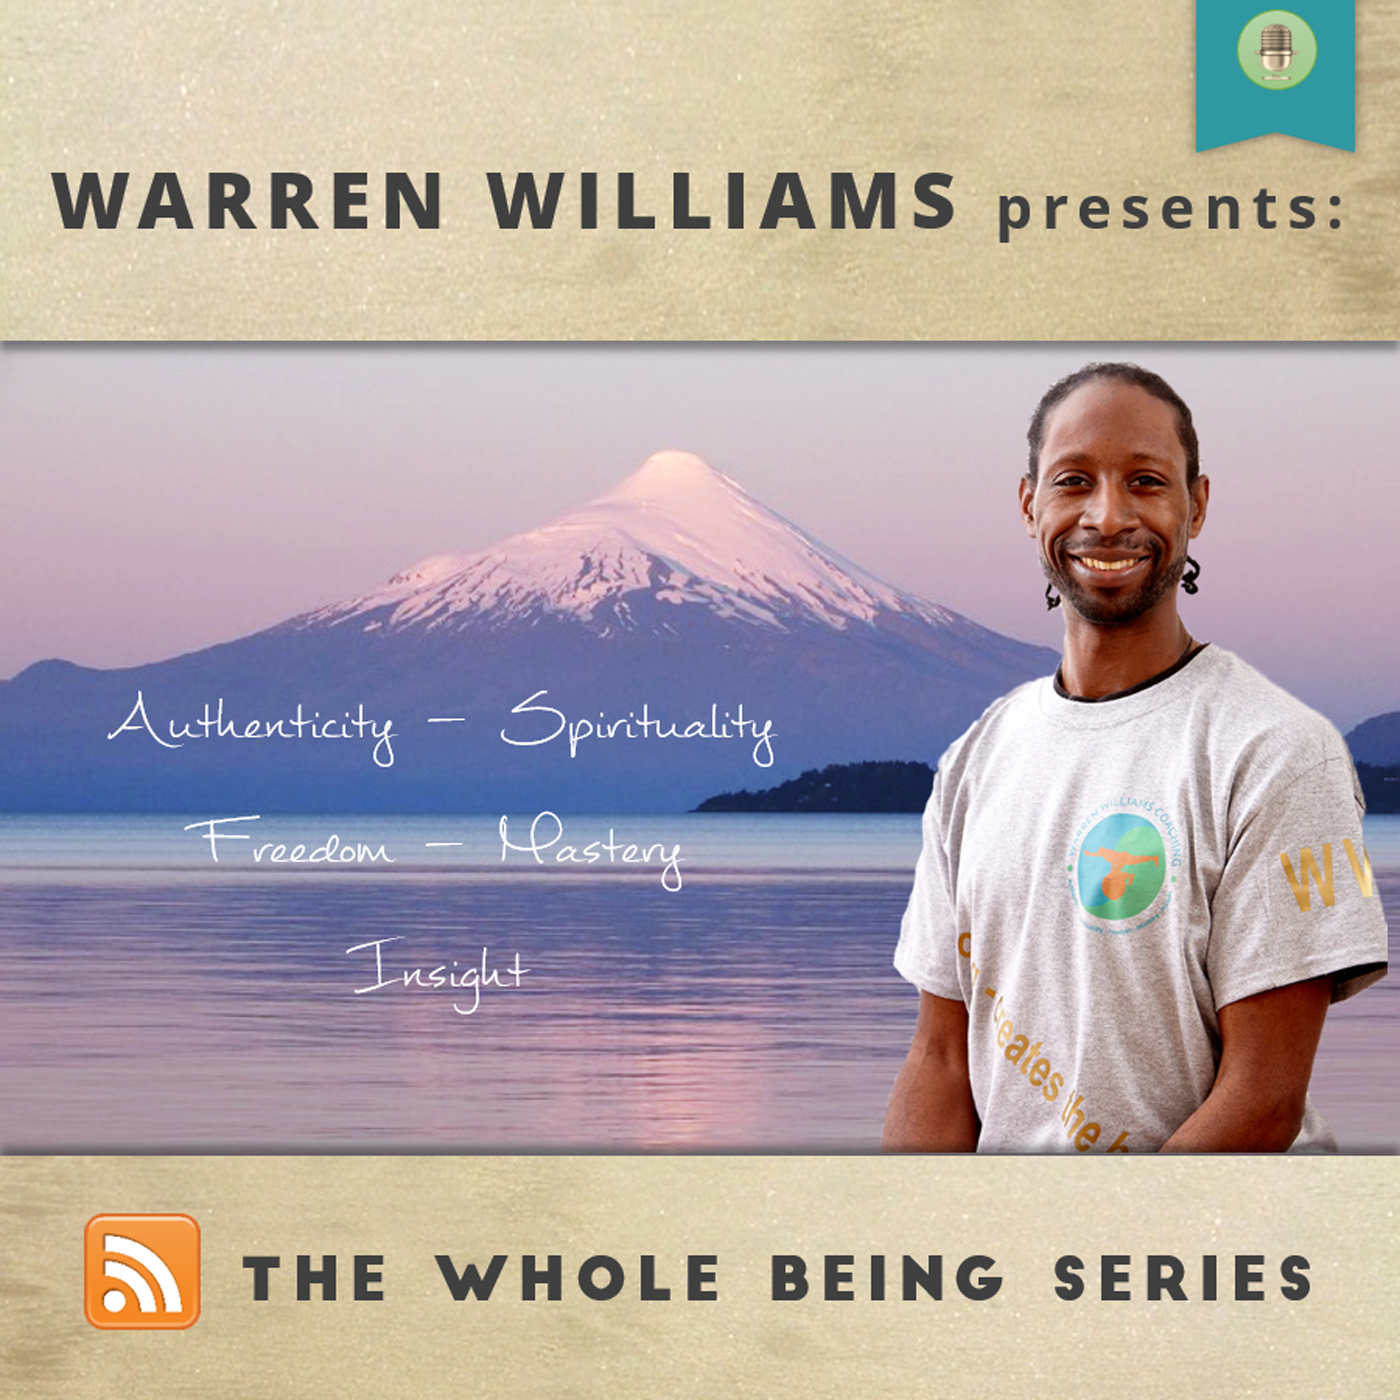 The Whole Being Series